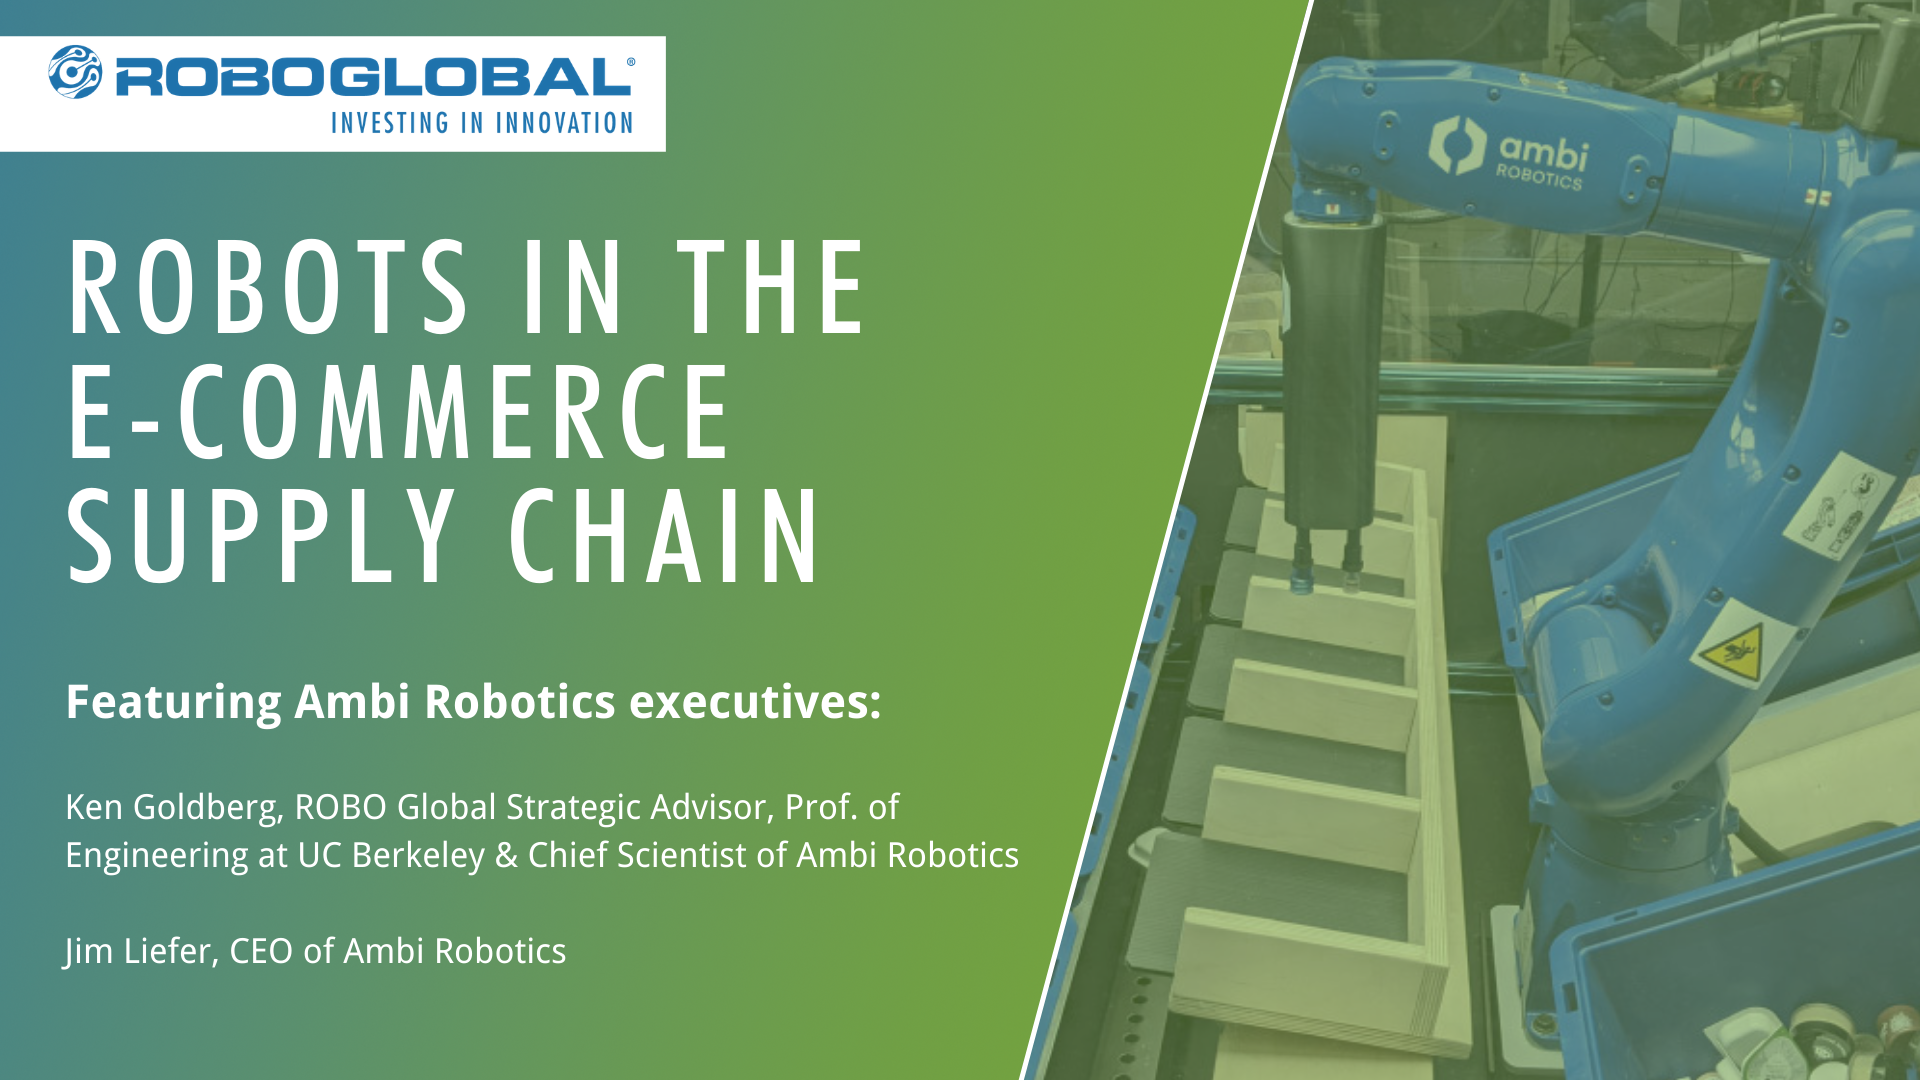 Robots in the E-Commerce Supply Chain